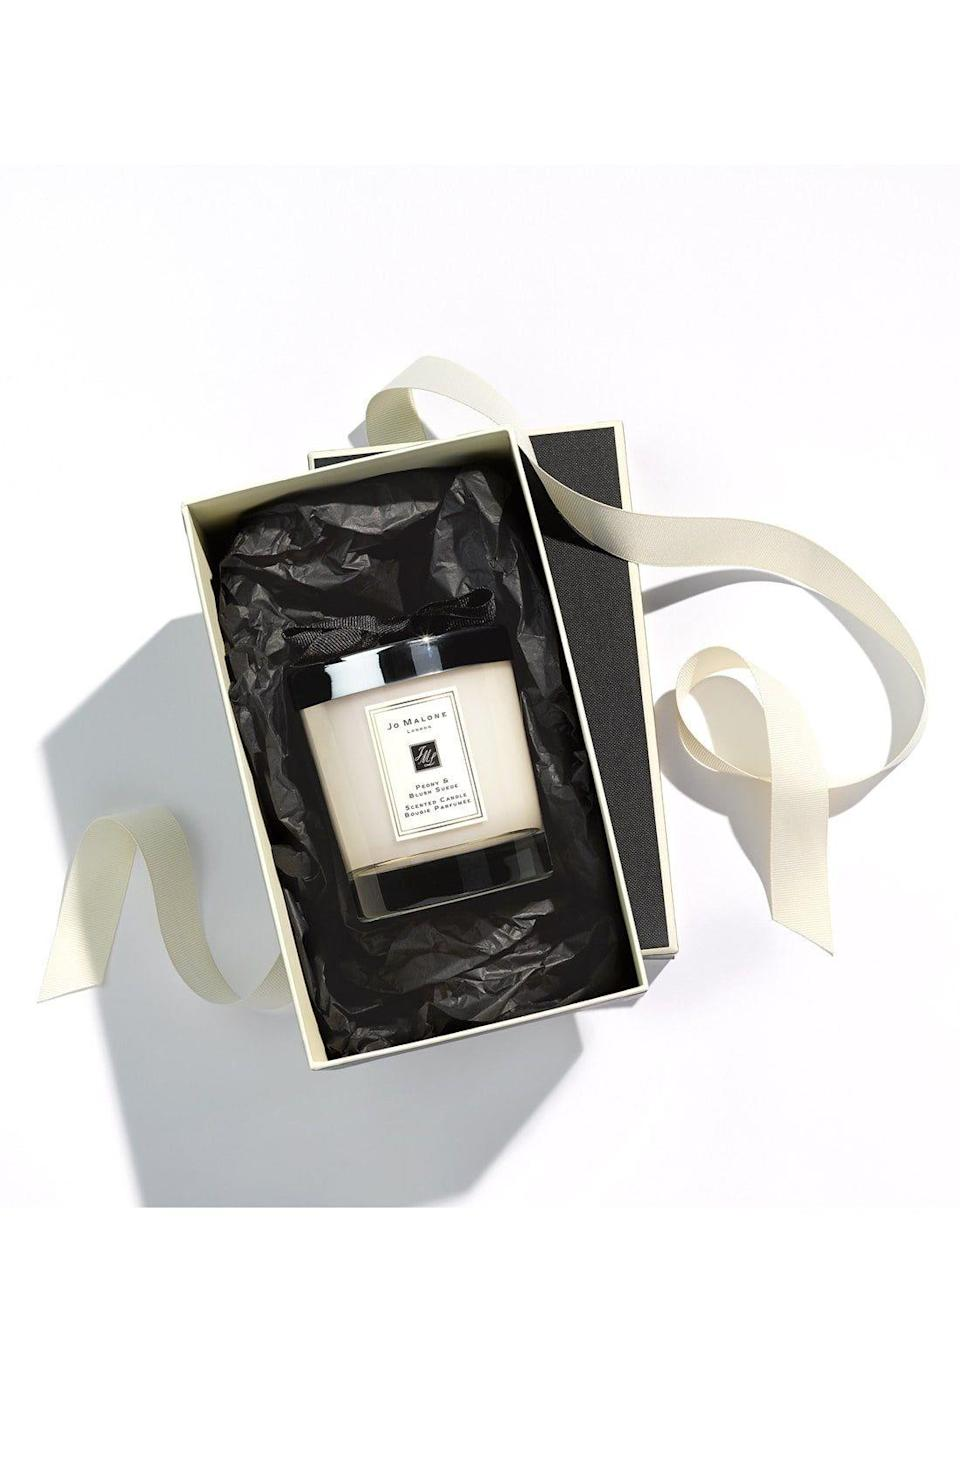 """<p><strong>JO MALONE LONDON\u003CSUP\u003E\u003C\u002FSUP\u003E</strong></p><p>nordstrom.com</p><p><strong>$69.00</strong></p><p><a href=""""https://go.redirectingat.com?id=74968X1596630&url=https%3A%2F%2Fwww.nordstrom.com%2Fs%2Fjo-malone-london-peony-blush-suede-scented-candle%2F3584269&sref=https%3A%2F%2Fwww.womansday.com%2Frelationships%2Fg3242%2Fgifts-for-couples%2F"""" rel=""""nofollow noopener"""" target=""""_blank"""" data-ylk=""""slk:Shop Now"""" class=""""link rapid-noclick-resp"""">Shop Now</a></p><p>If you're gifting for a couple you don't know that well or are looking for something more generic, a Jo Malone candle is a luxurious treat. The brand is well-known for their gorgeous, long-lasting scents that have kept customers coming back for years.</p>"""